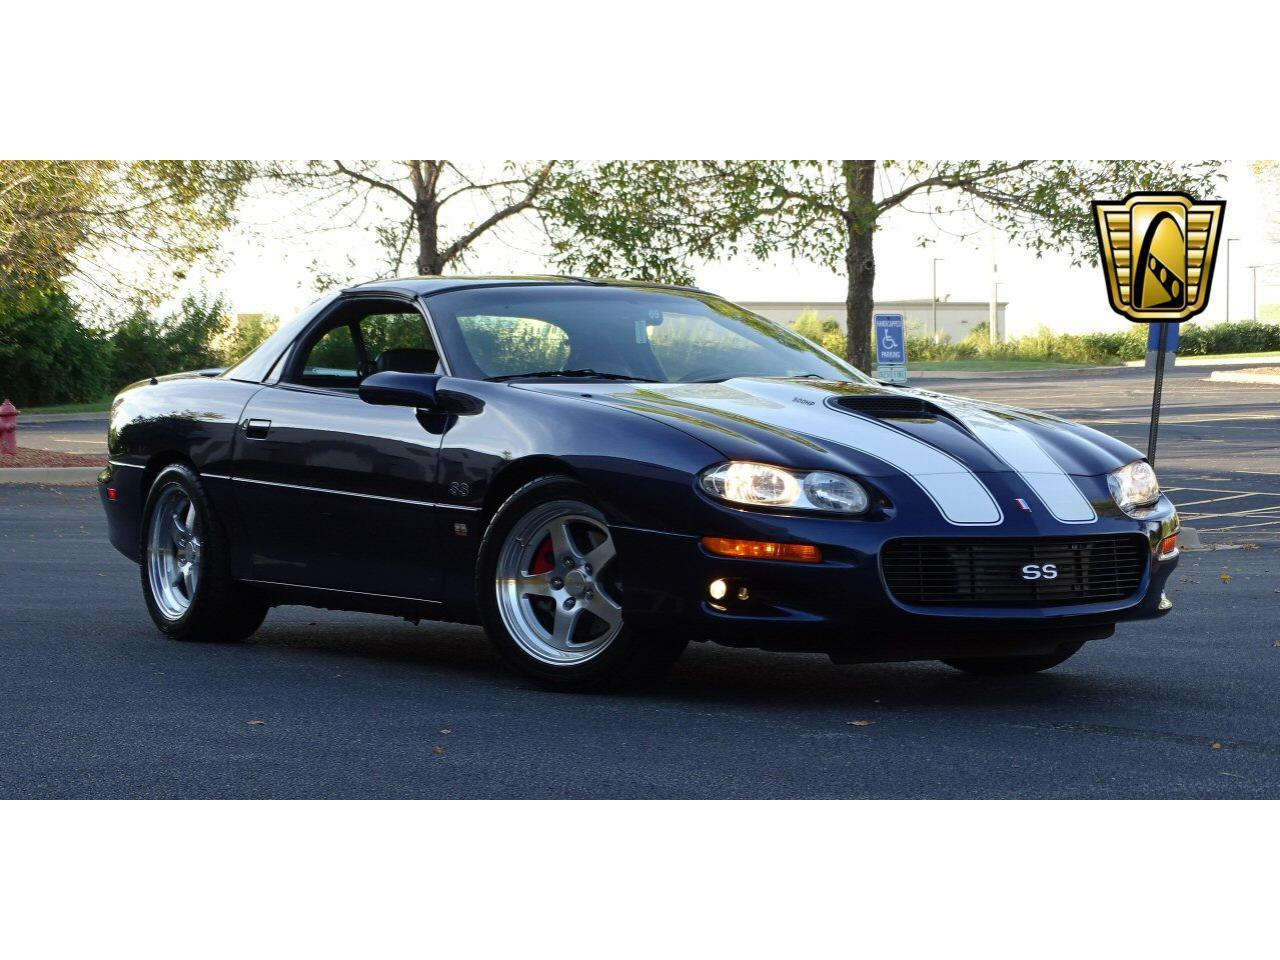 Large Picture of 2002 Camaro located in Illinois - $53,000.00 Offered by Gateway Classic Cars - St. Louis - KDSG